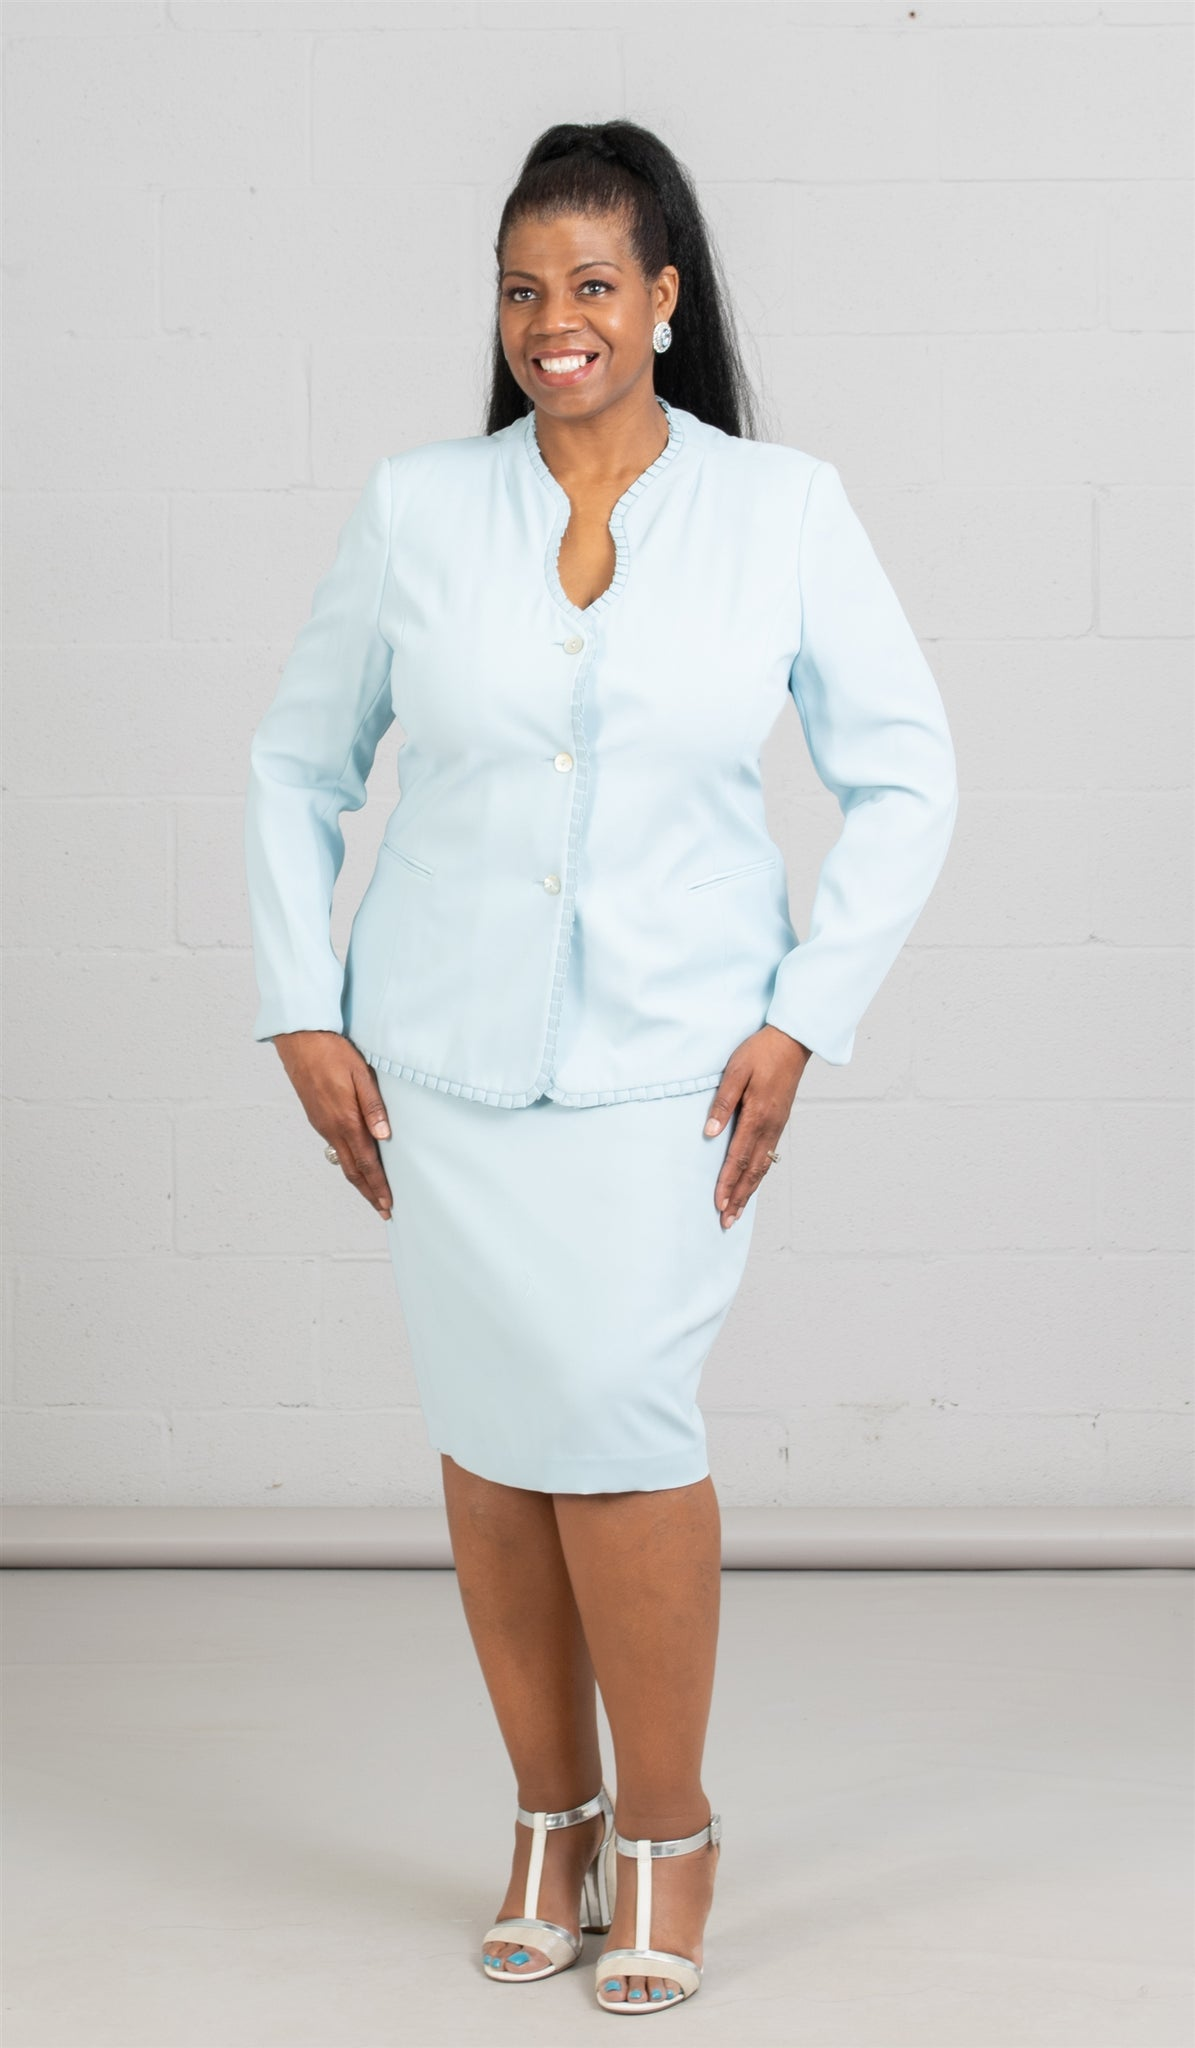 Women Business Skirt Suit 90514 - Church Suits For Less